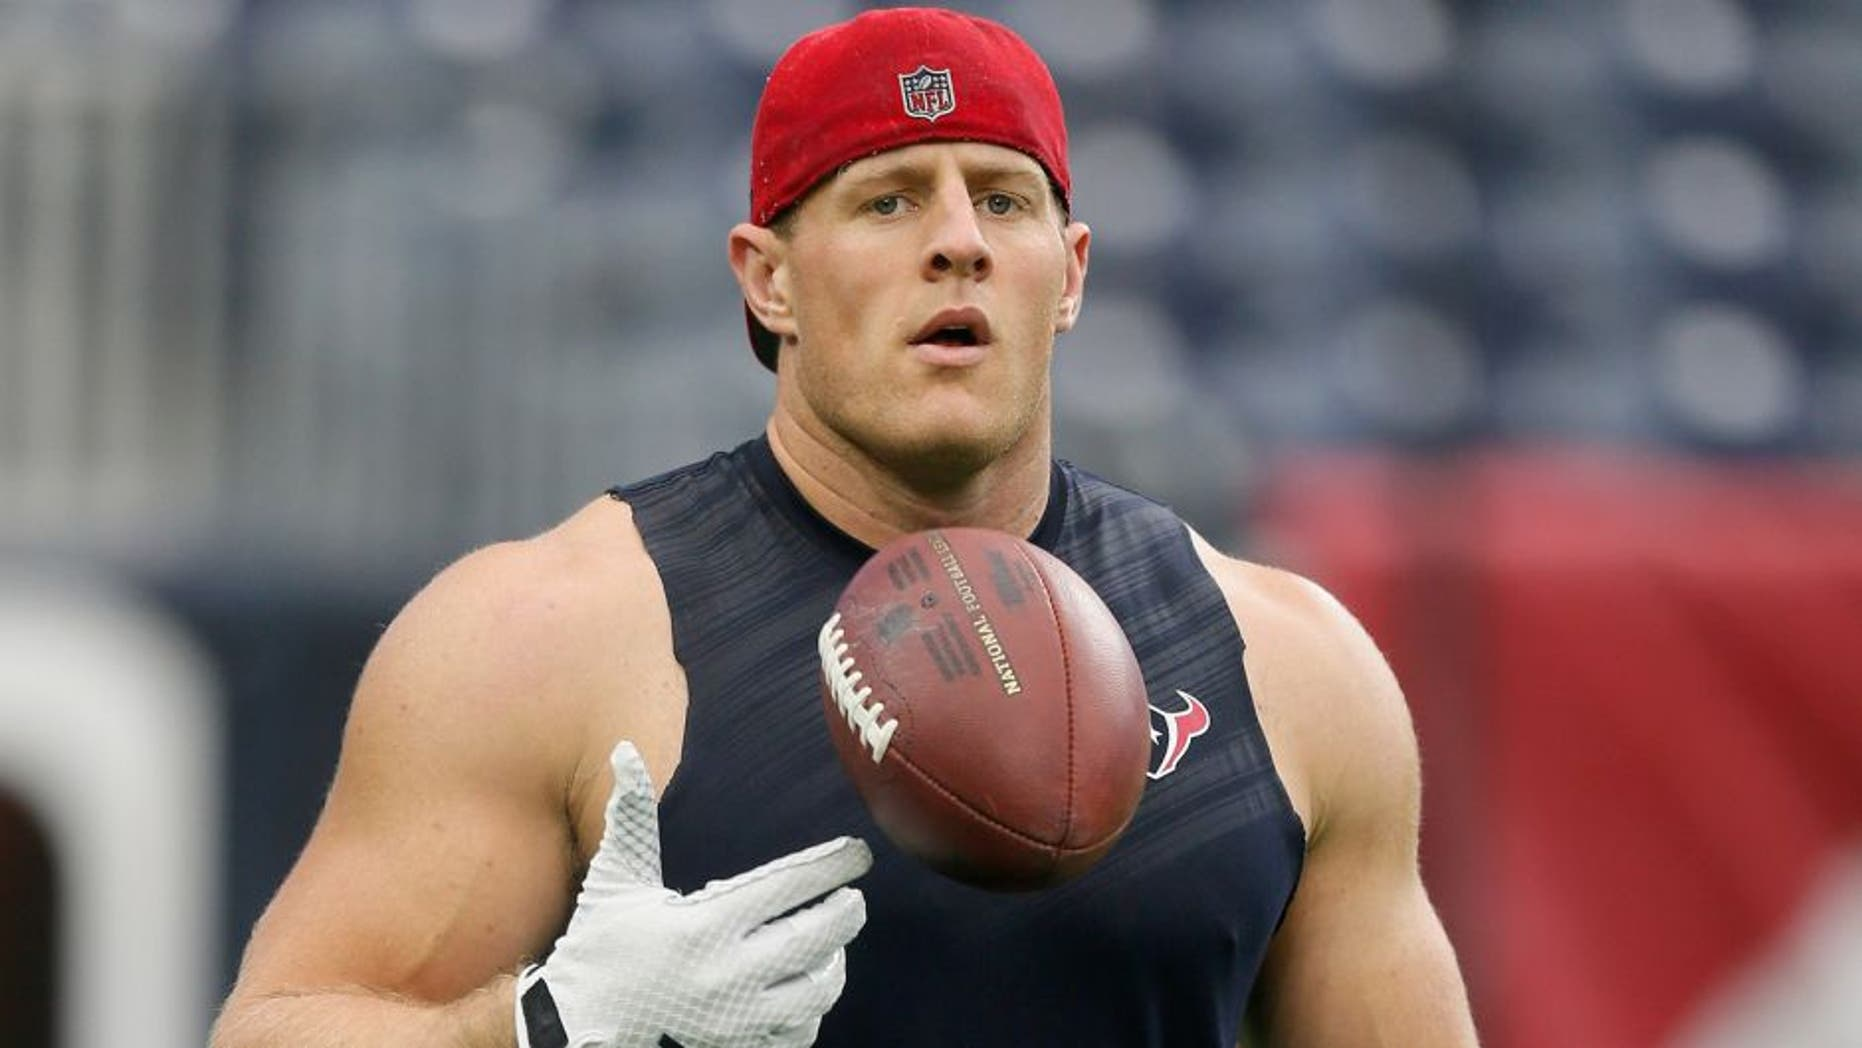 HOUSTON, TX - AUGUST 15: J.J. Watt #99 of the Houston Texans warms up before the Houston Texans play the San Francisco 49ers in a preseason football game at Reliant Arena at Reliant Park on August 15, 2015 in Houston, Texas. Houston won 23-10. (Photo by Bob Levey/Getty Images)